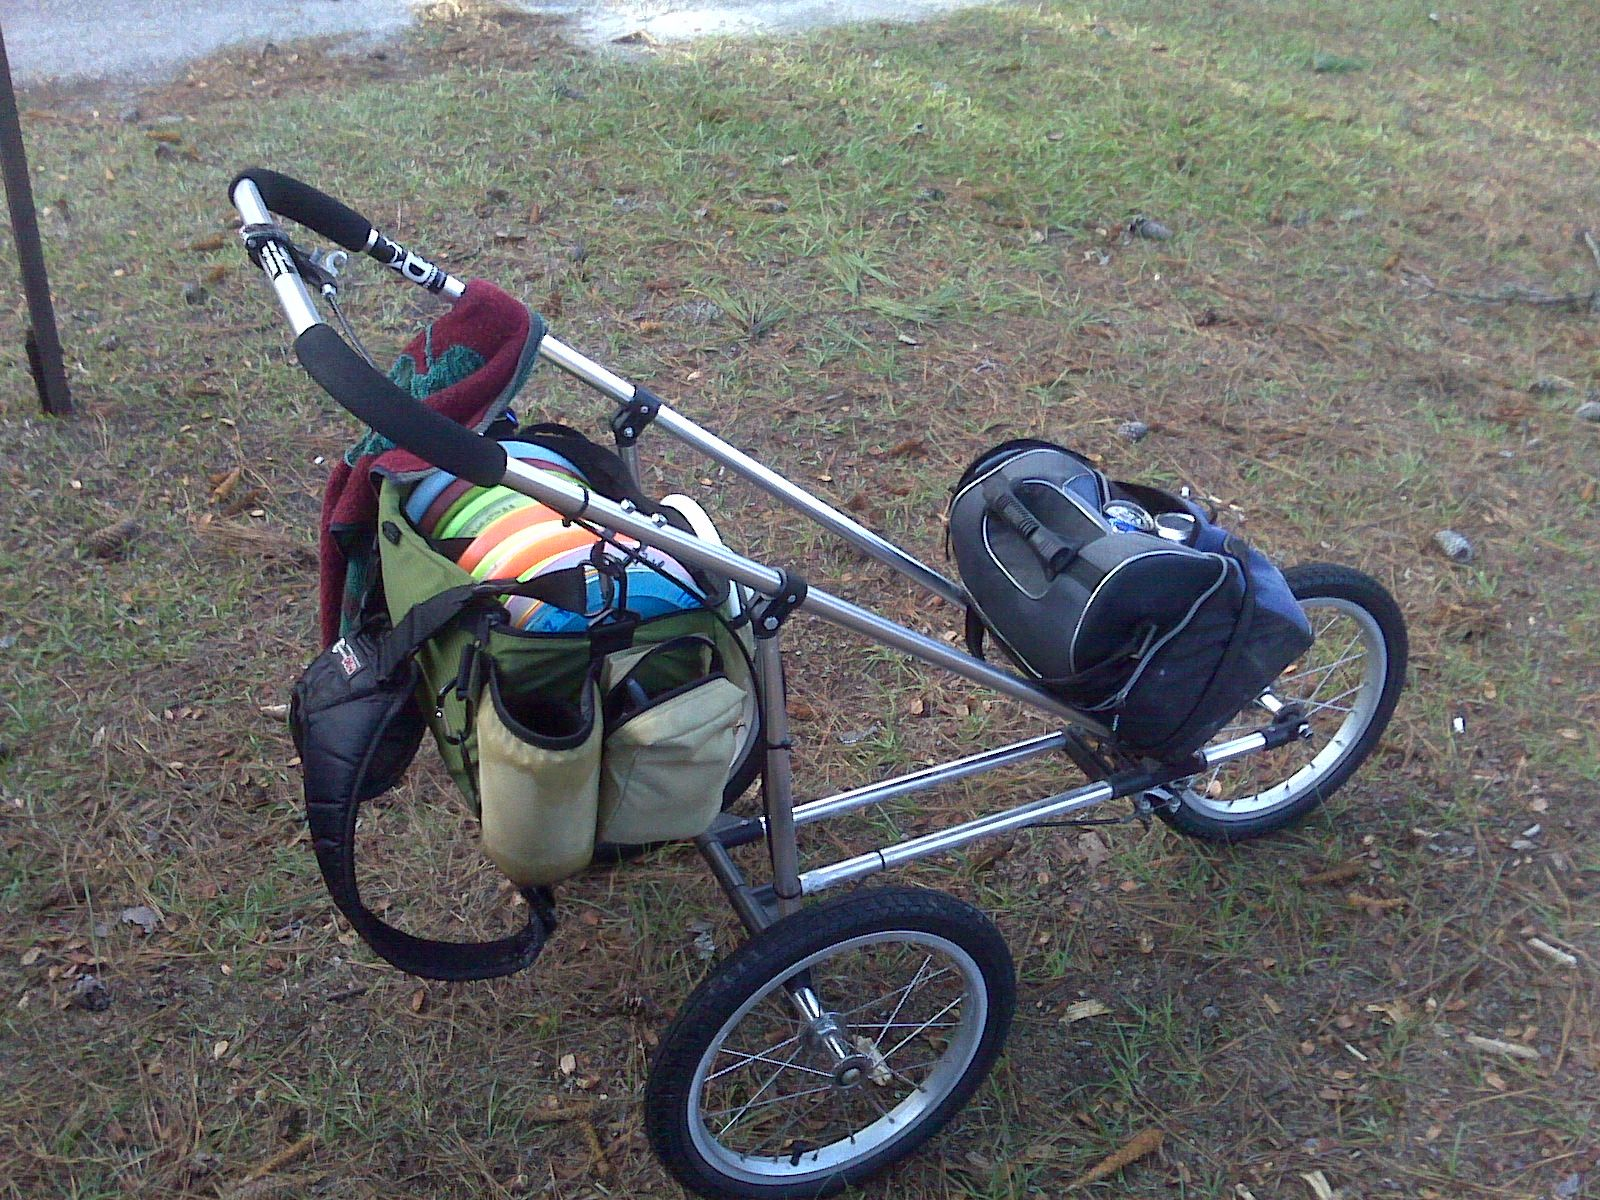 Disc Golf Chair Disc Golf Cart Made From Stroller For The Love Of Disc